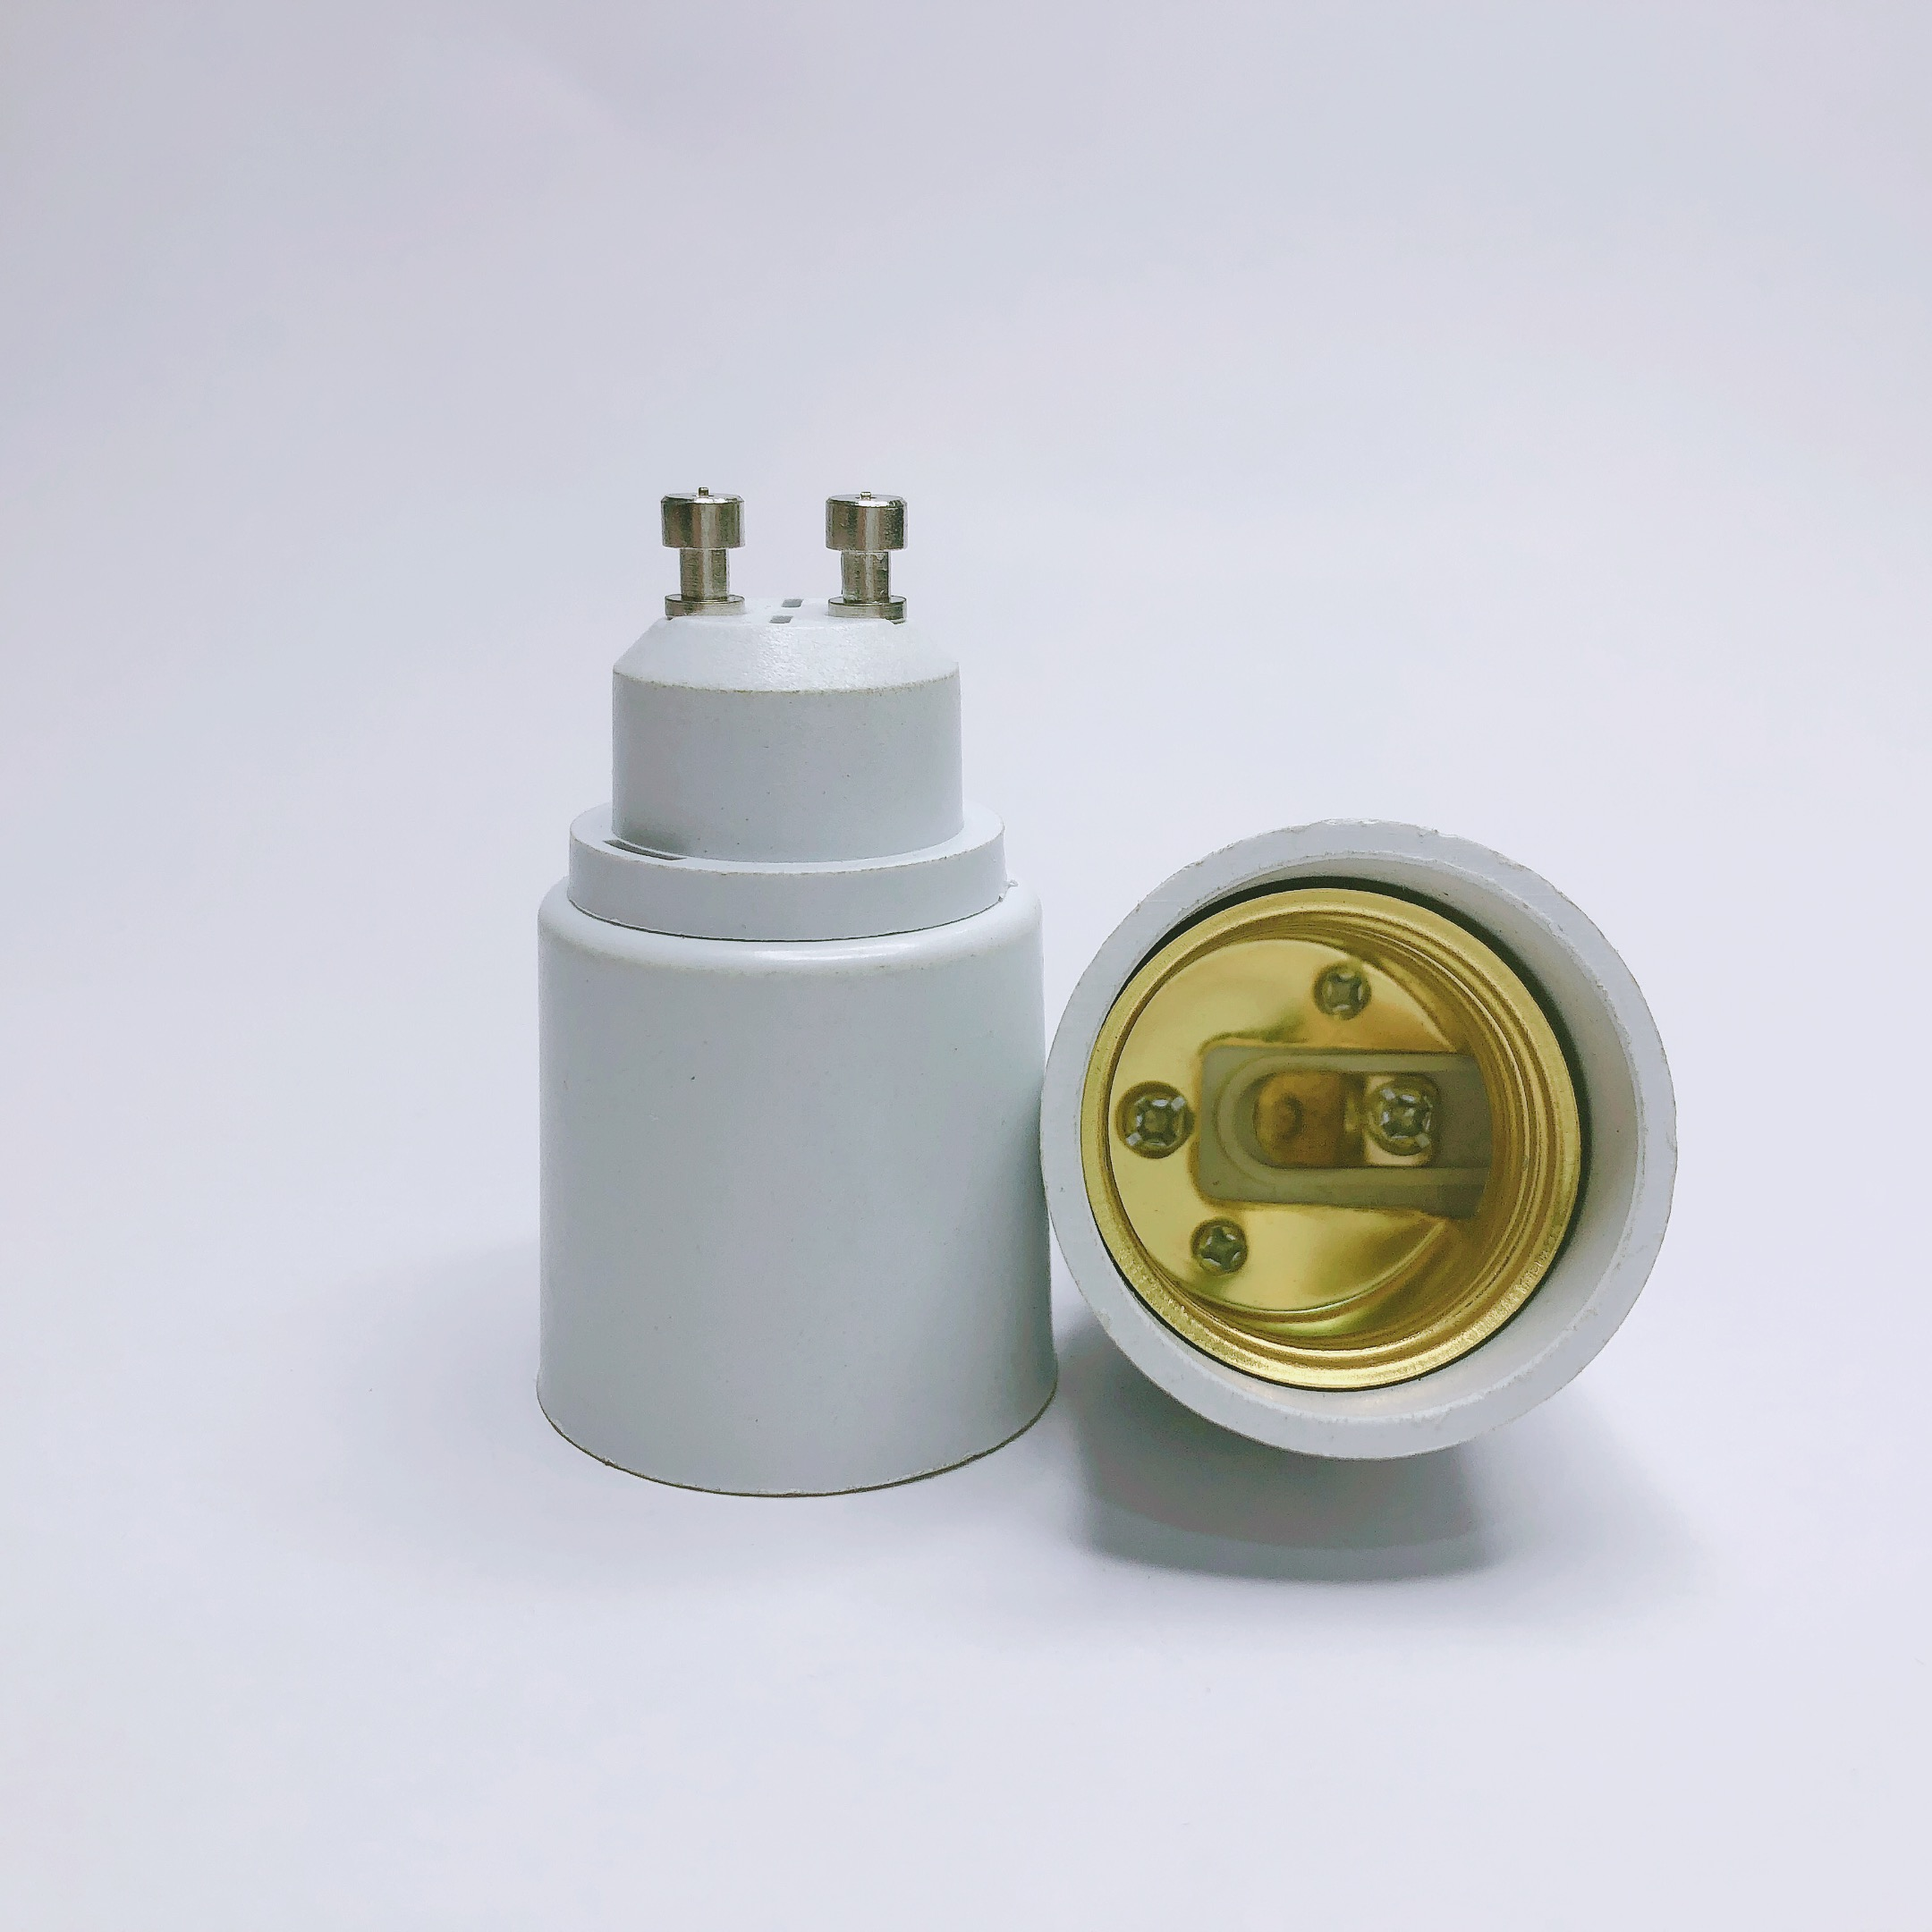 Led Lamp Base Converter GU10 To E27 Screw Light Bulb Holder Adapter Socket Plug Extender PBT Plastic Safty Fast Ship